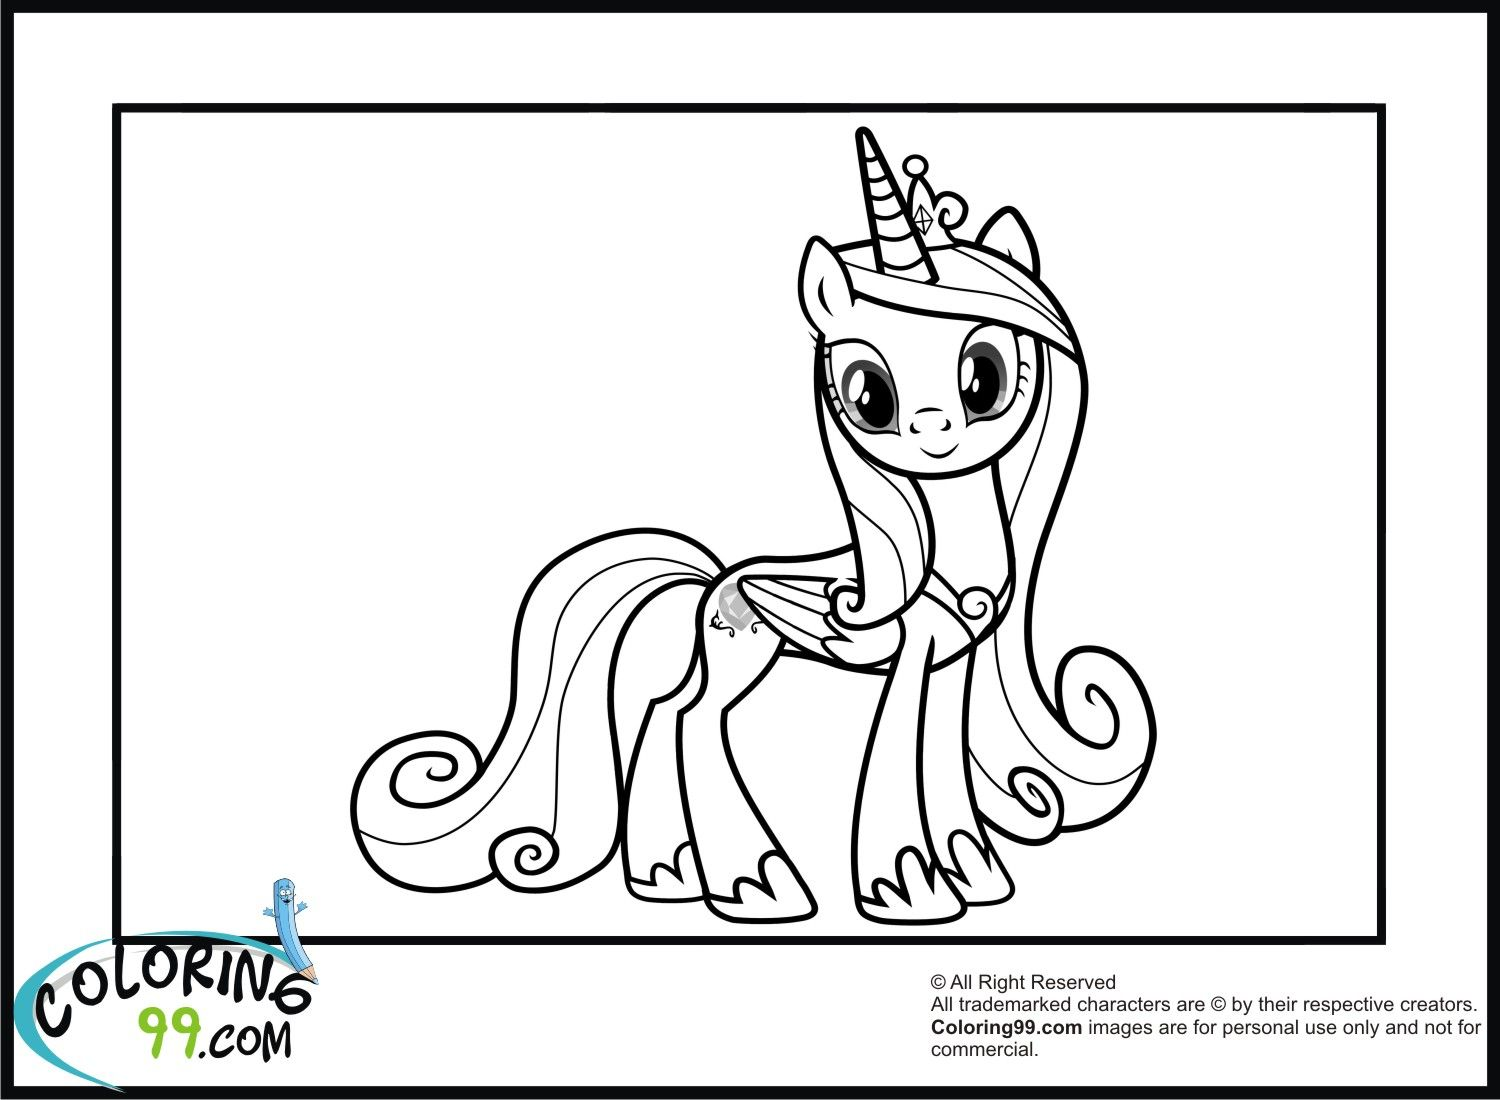 Coloring pages of princess cadence - Mlp Printable Coloring Pages Princess Cadence Coloring Pages Coloring99 Com